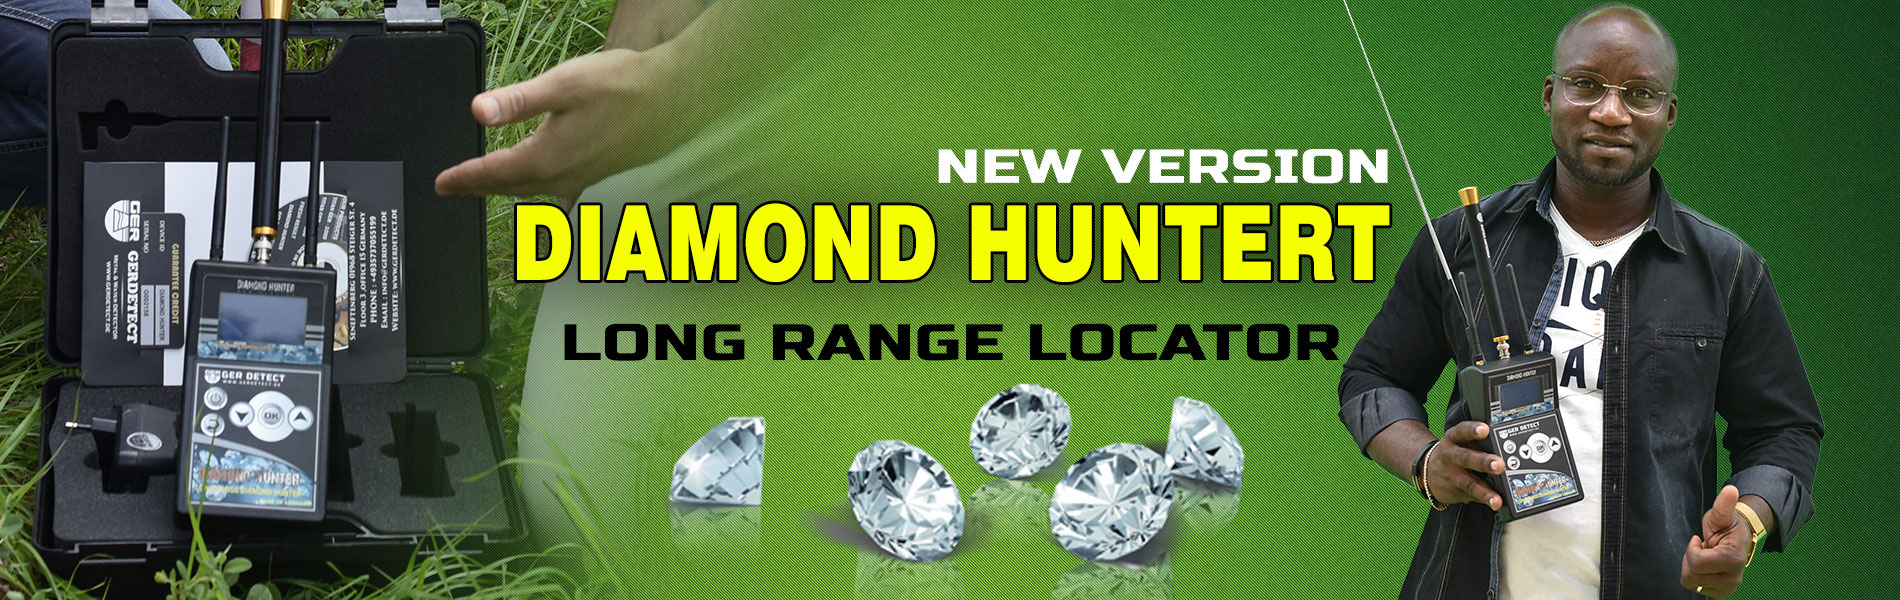 diamond-hunter-device-customer-from-angola